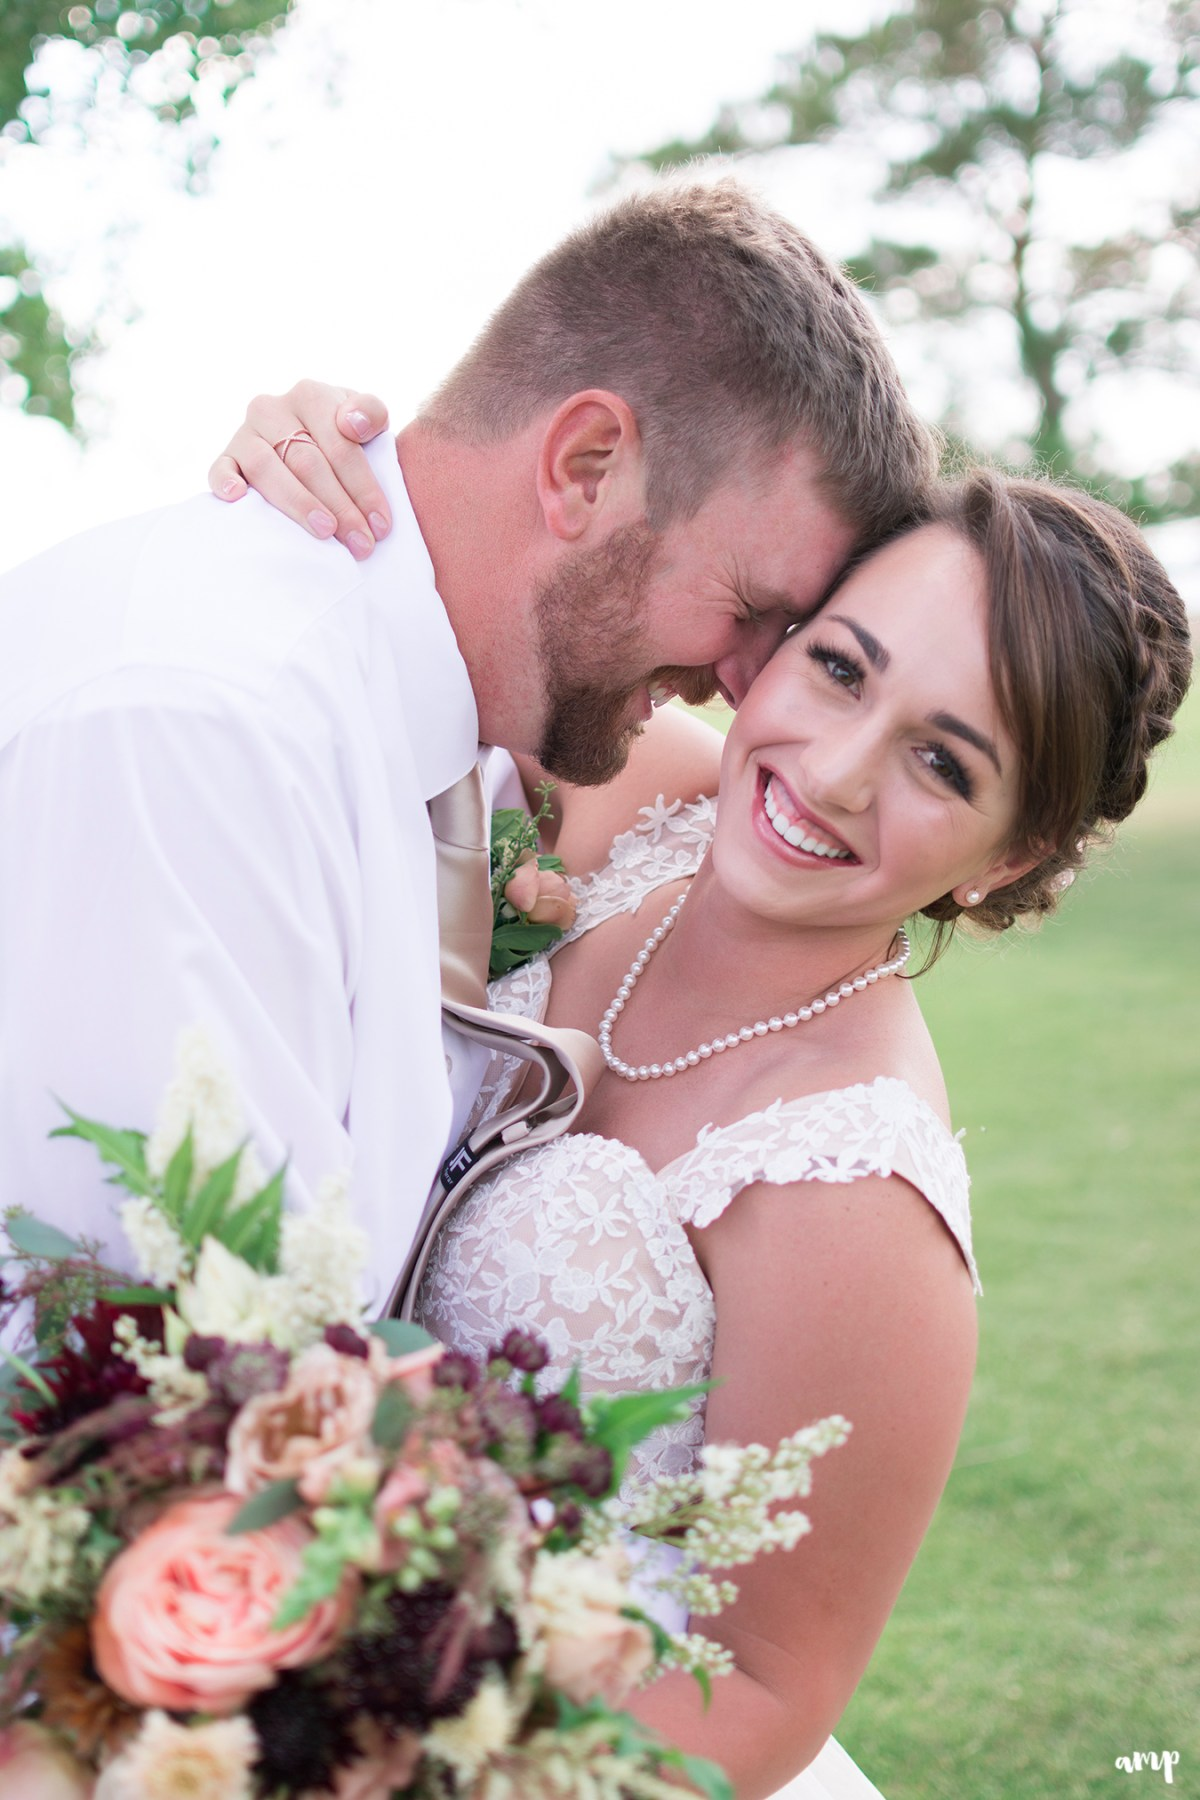 Whimsical vintage flower bouquet and bride with groom laughing